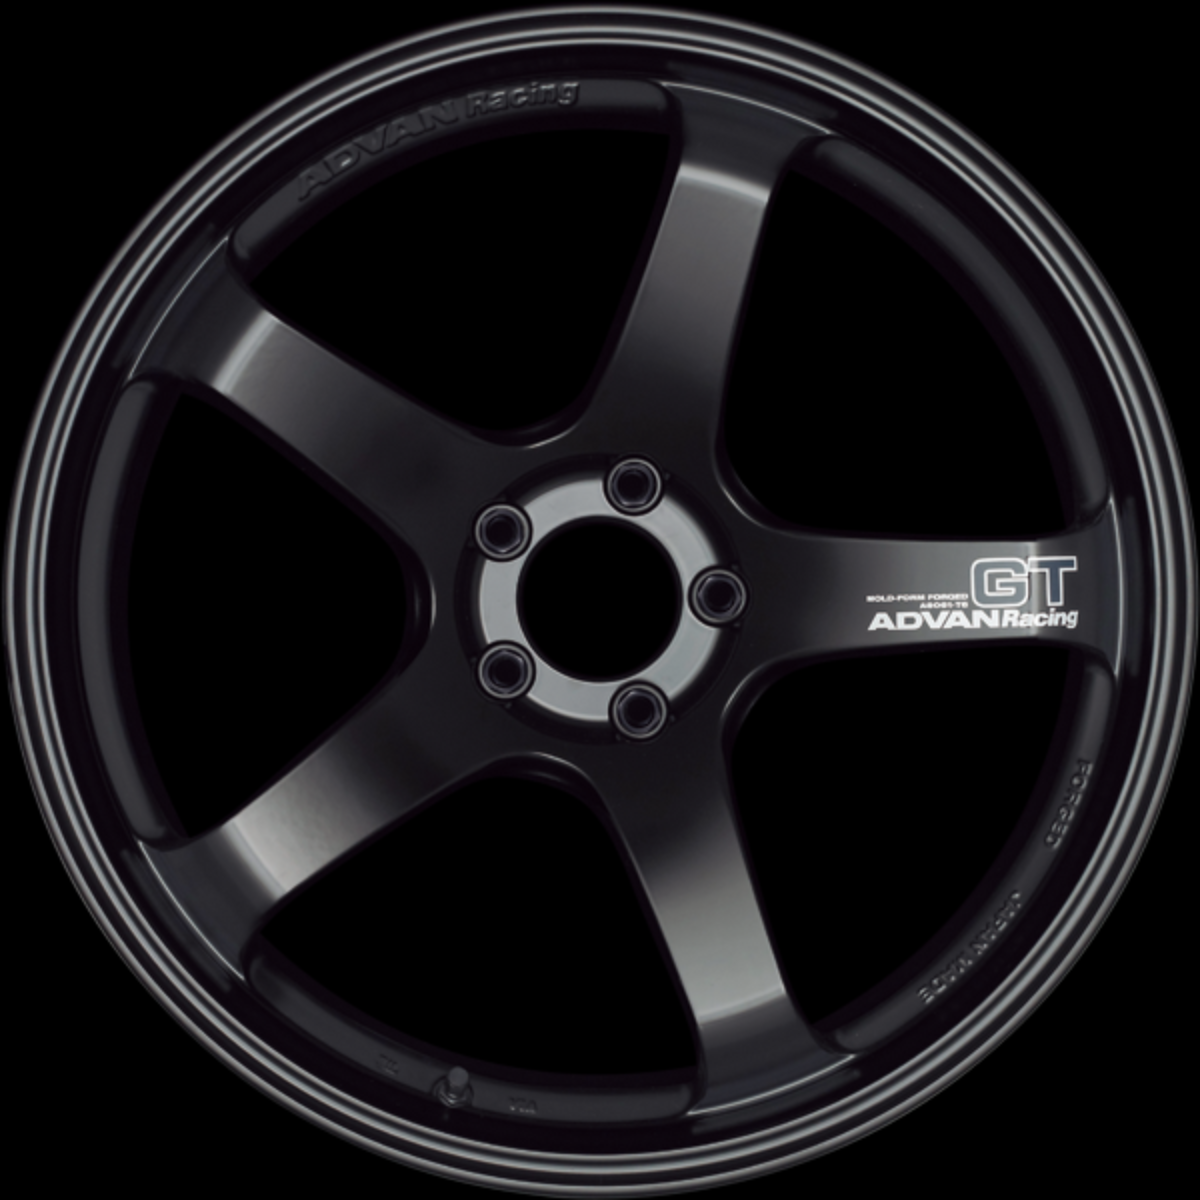 [Set of 4] YOKOHAMA ADVAN Racing GT 19x9.0J +35 5x114.3 SEMI GLOSS BLACK